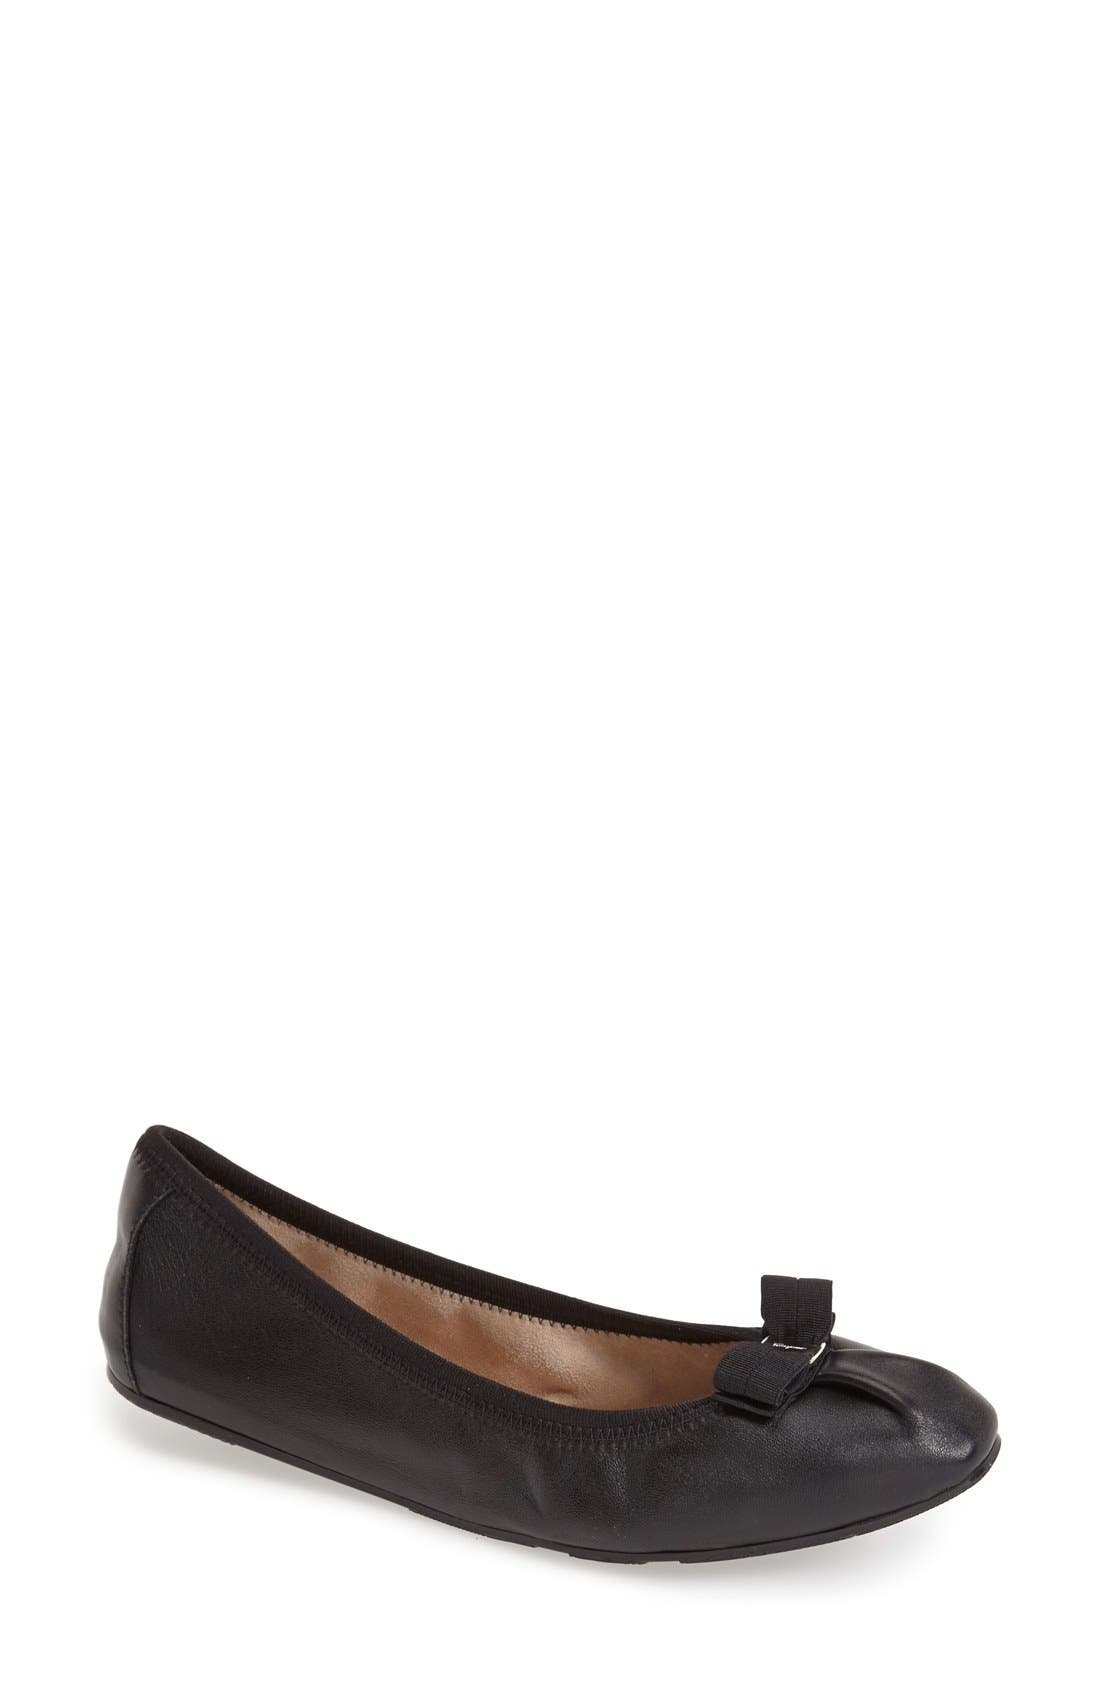 Alternate Image 1 Selected - Salvatore Ferragamo Skimmer Flat (Women)